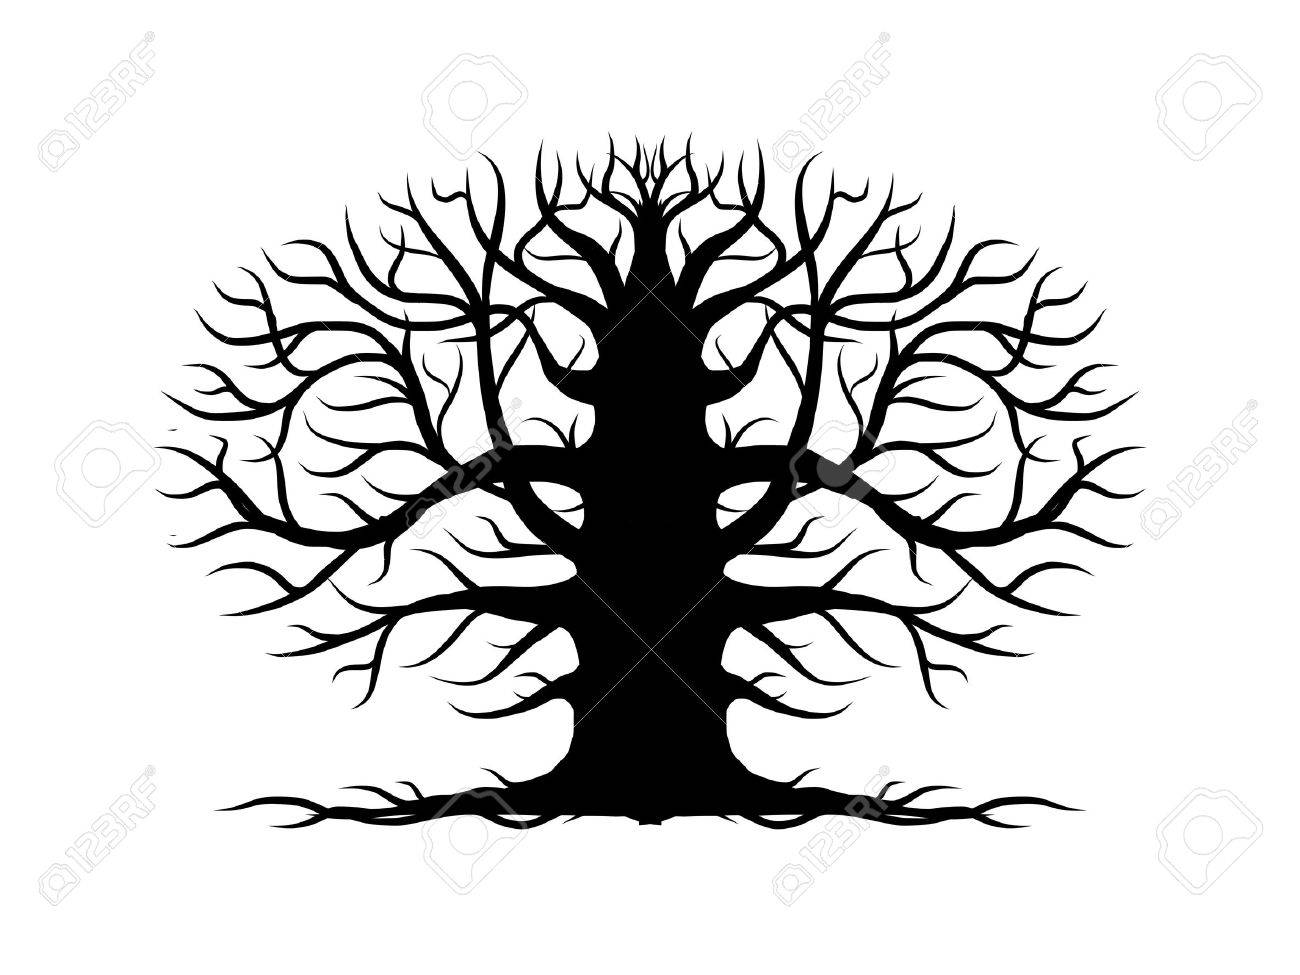 Oak Tree With Roots Sketch Old tree bare  silhouette for